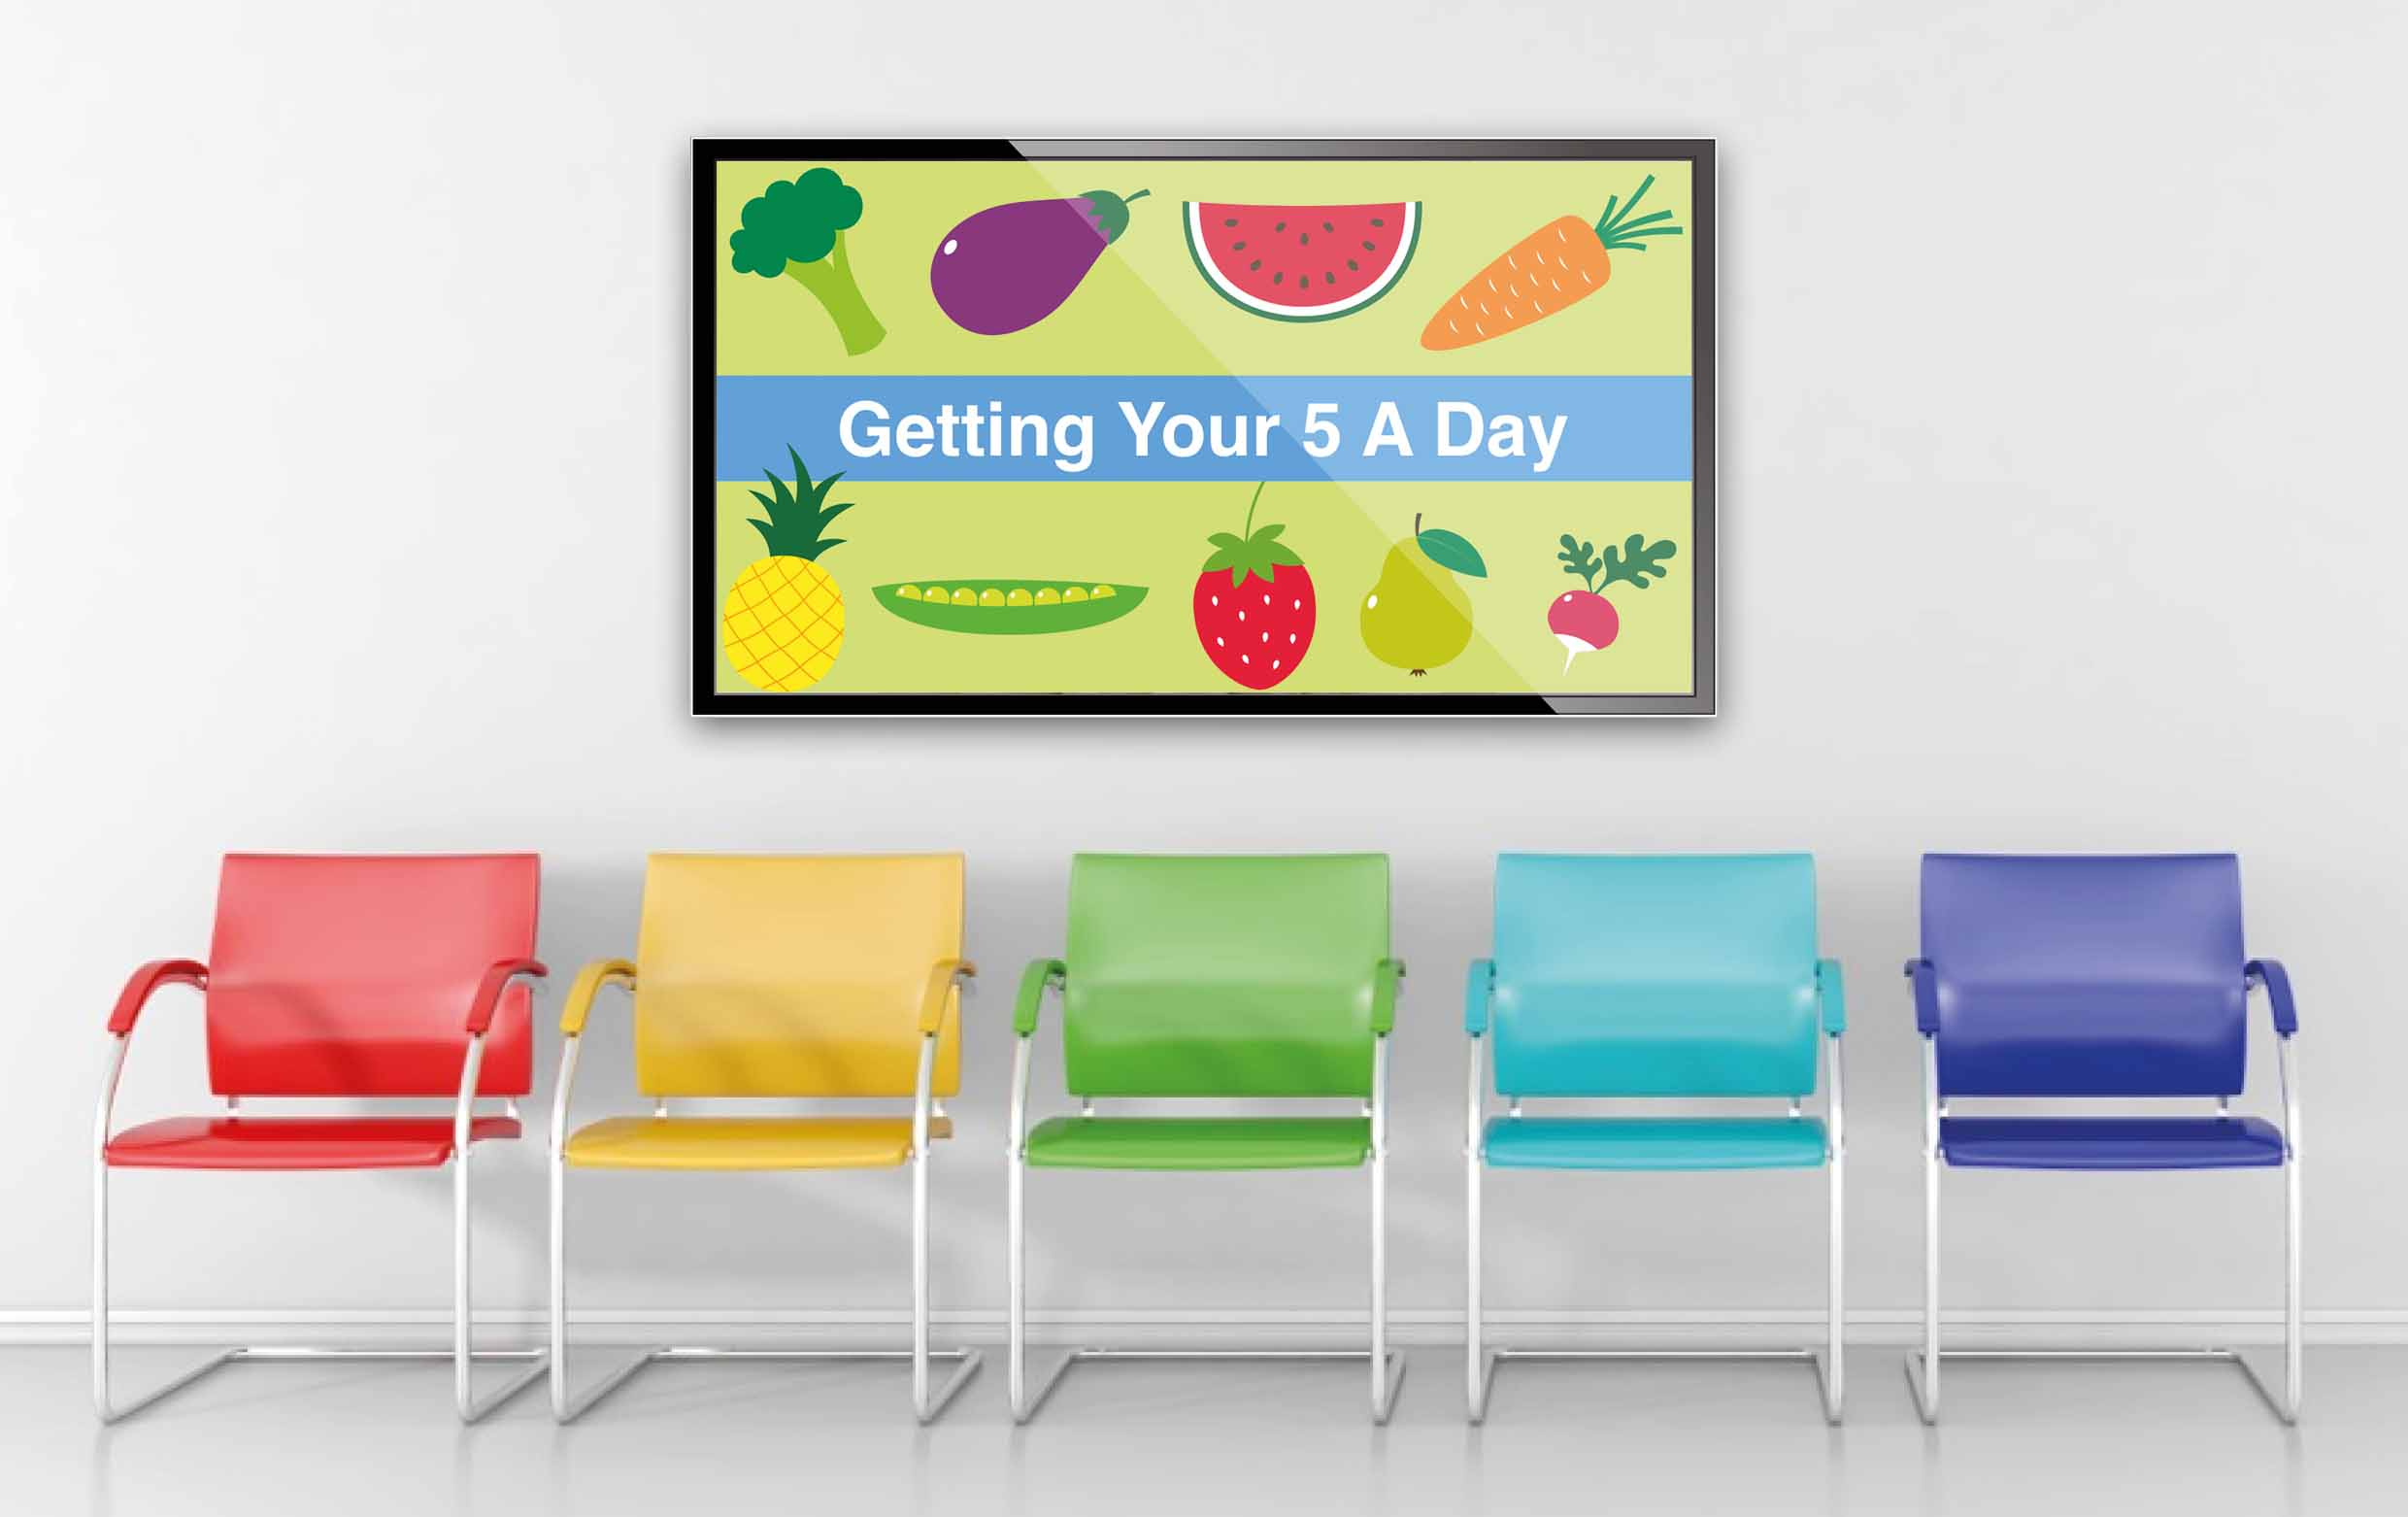 Getting the most out of digital signage in healthcare